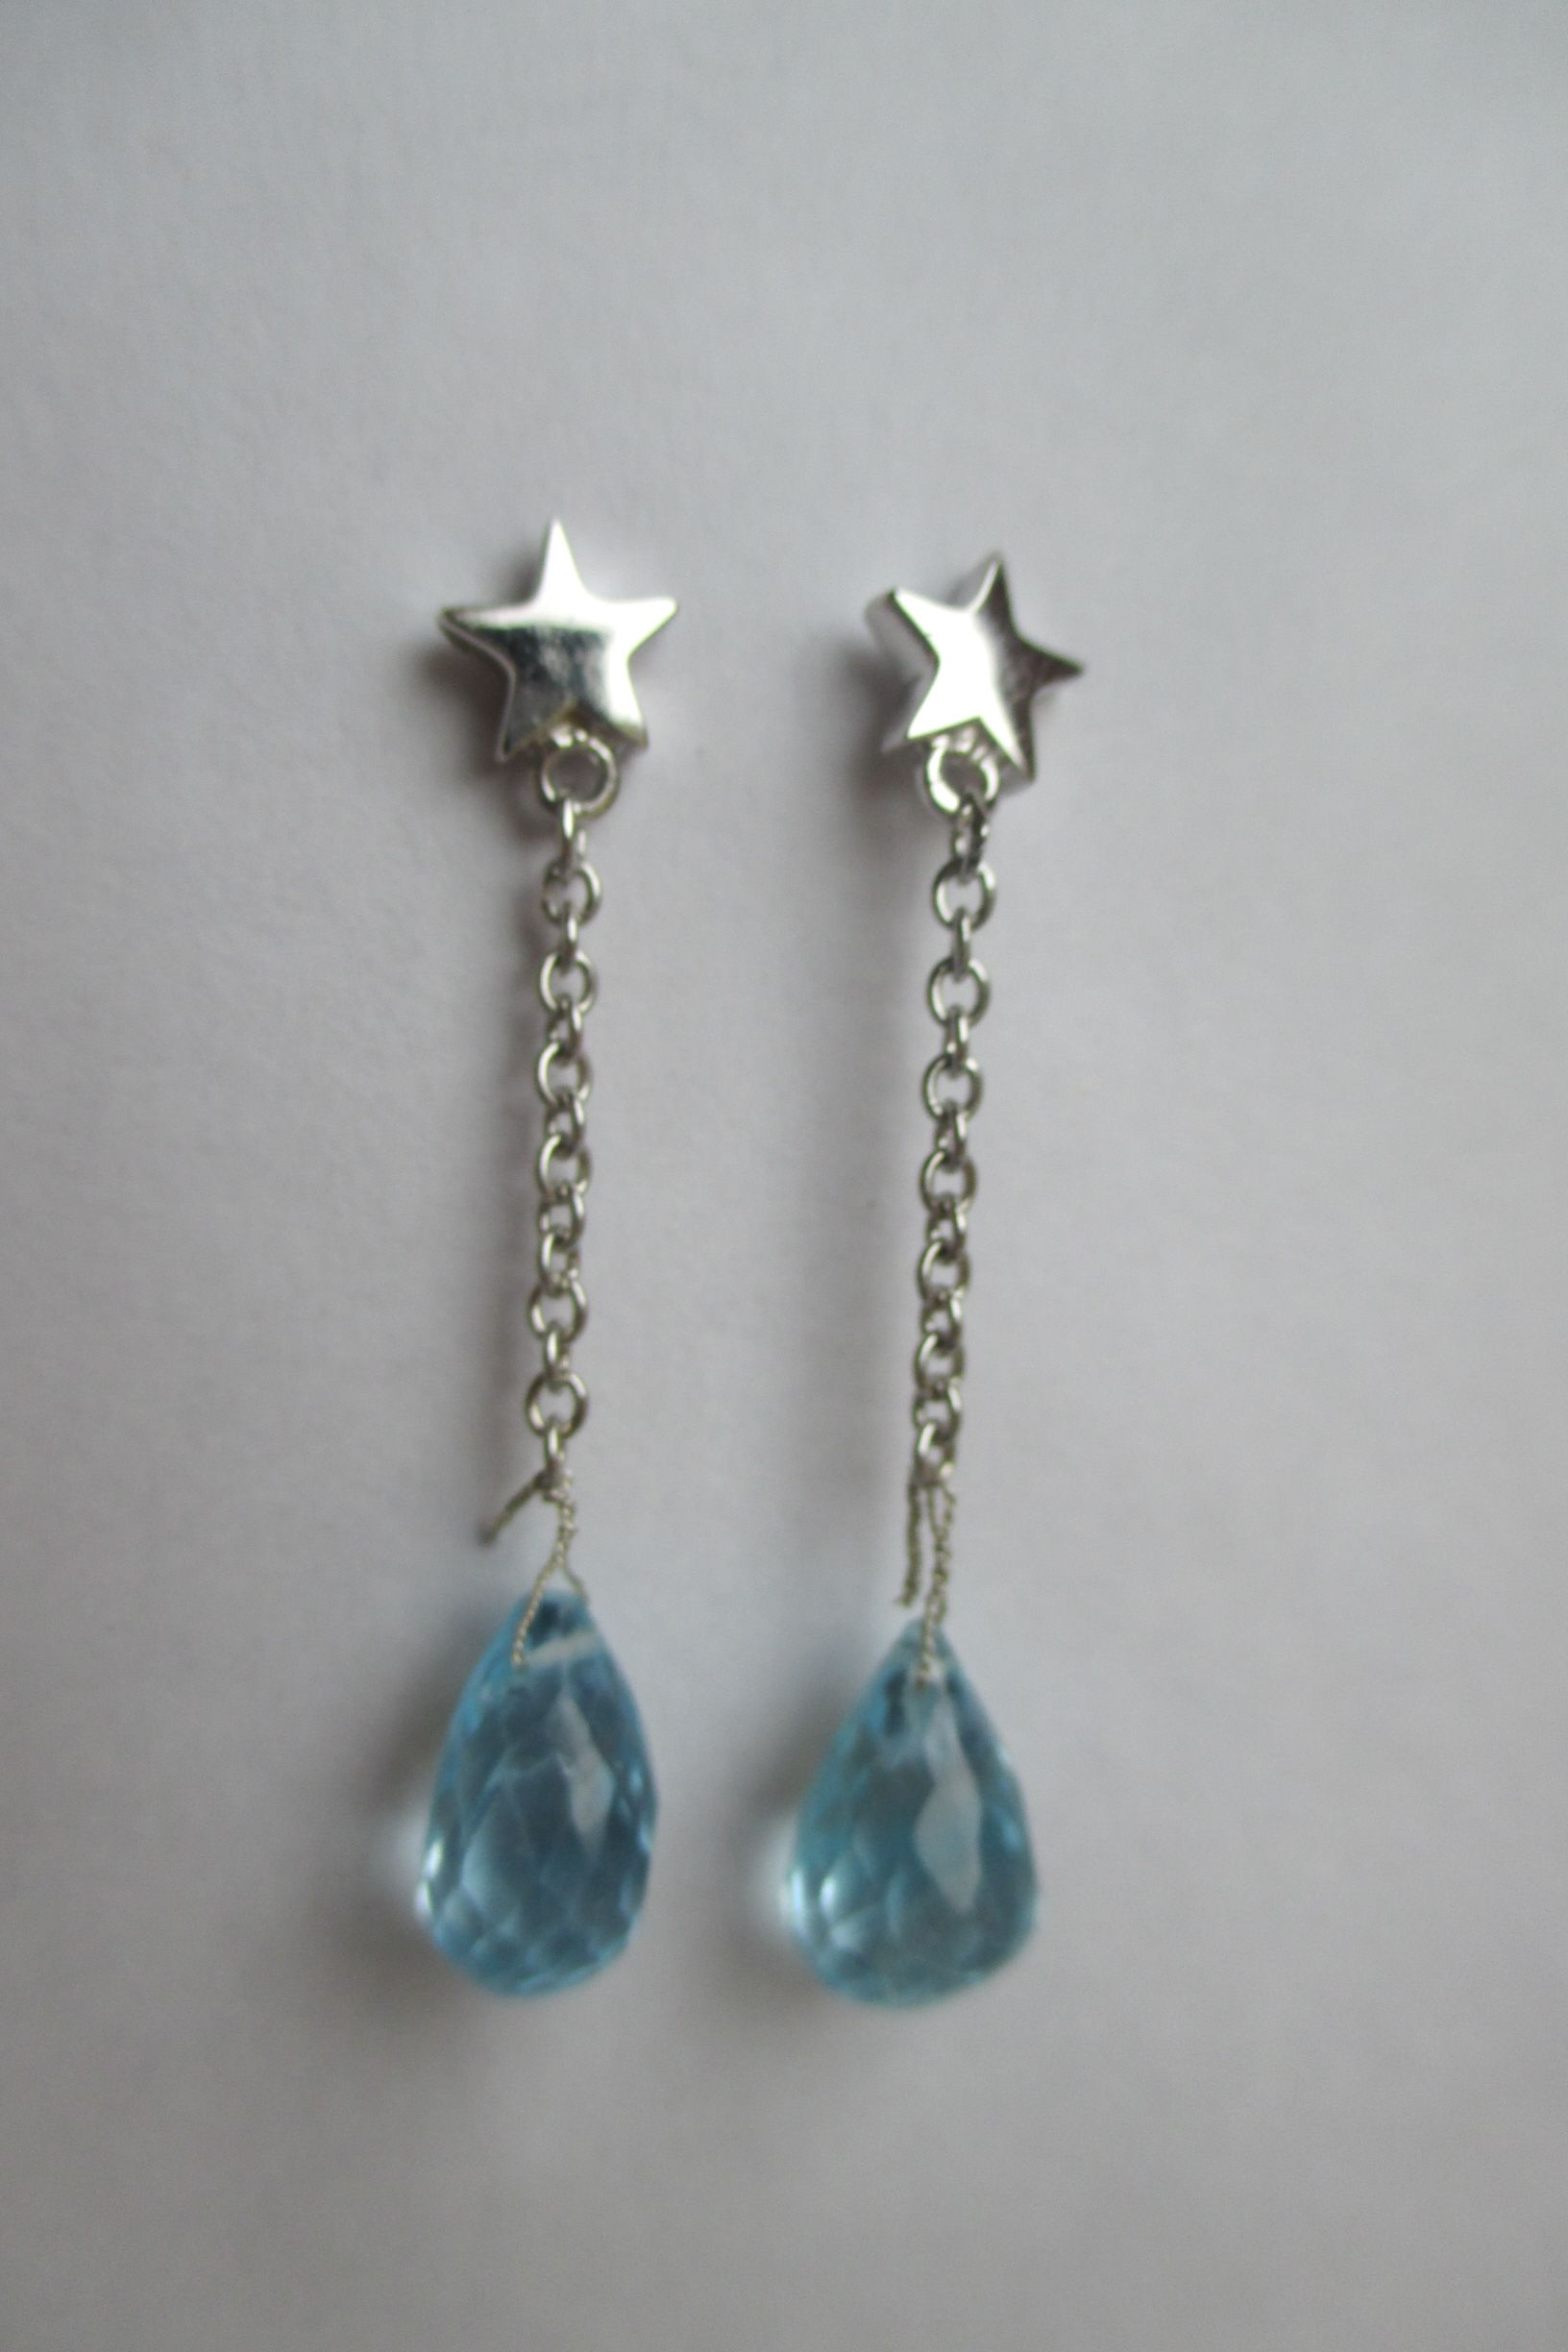 Silver star stud earrings with large Aquamarine drops